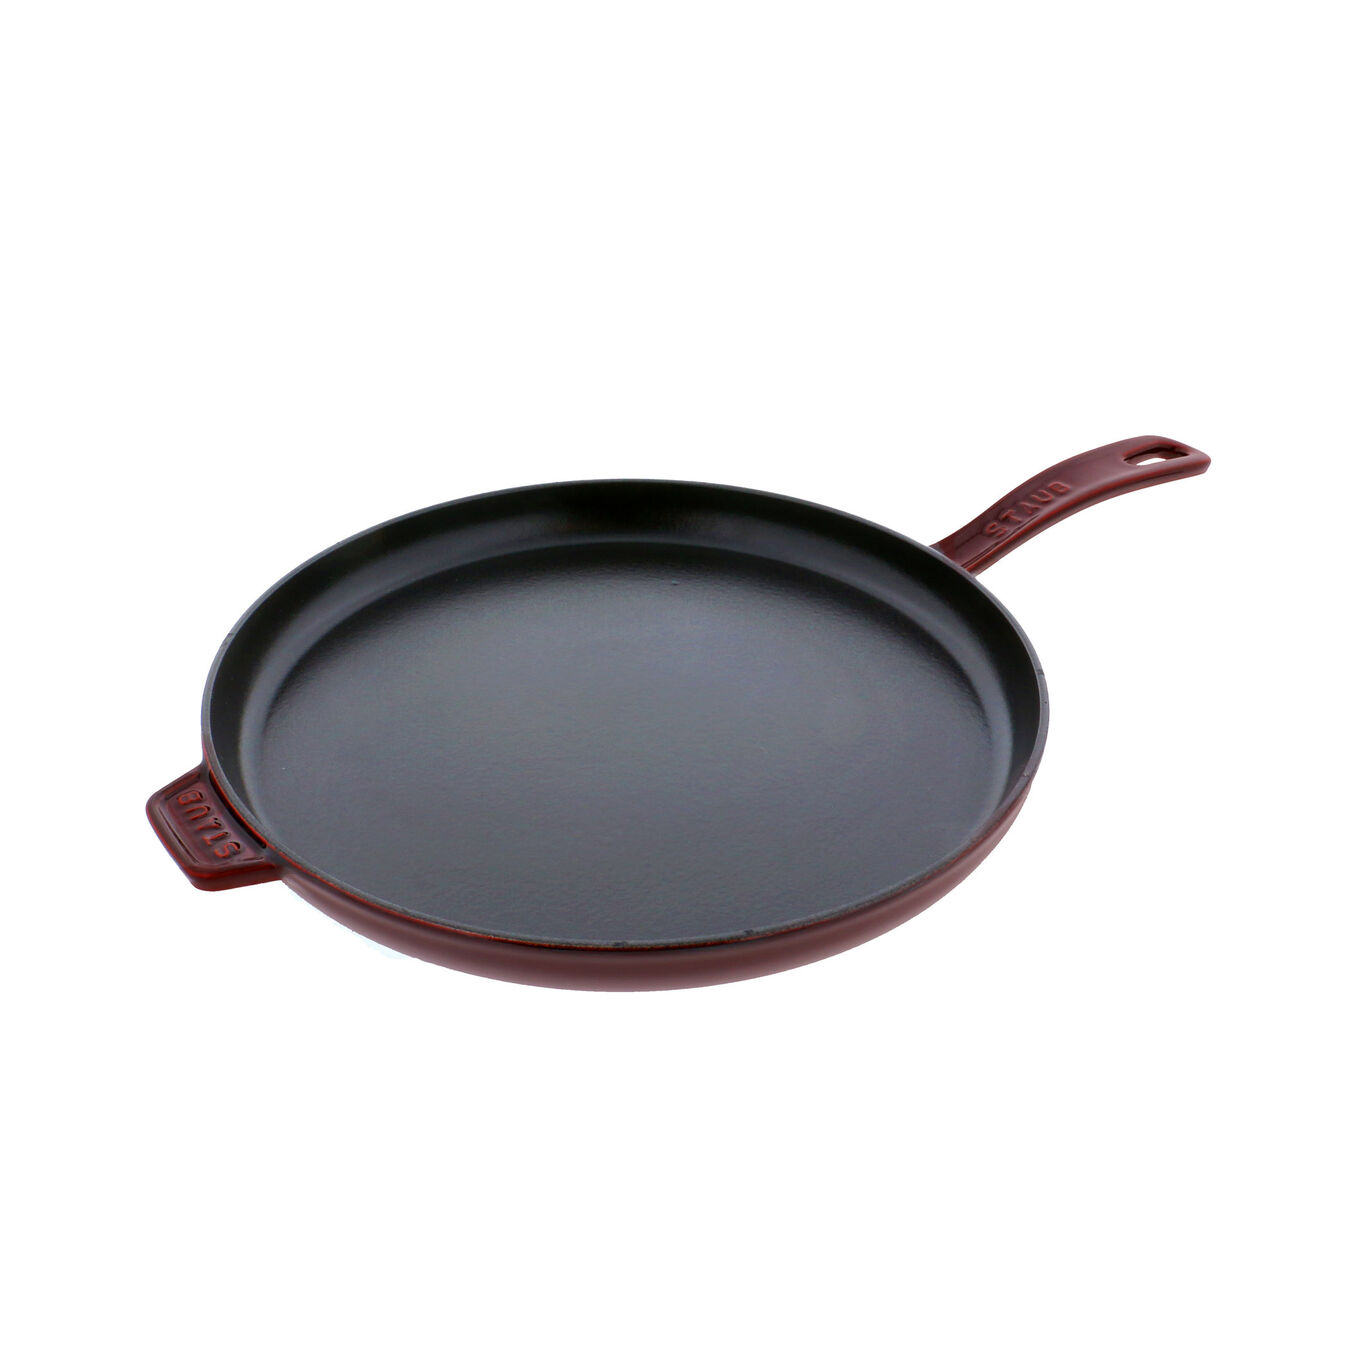 12-inch Round Breakfast Pan - Visual Imperfections - Grenadine,,large 1